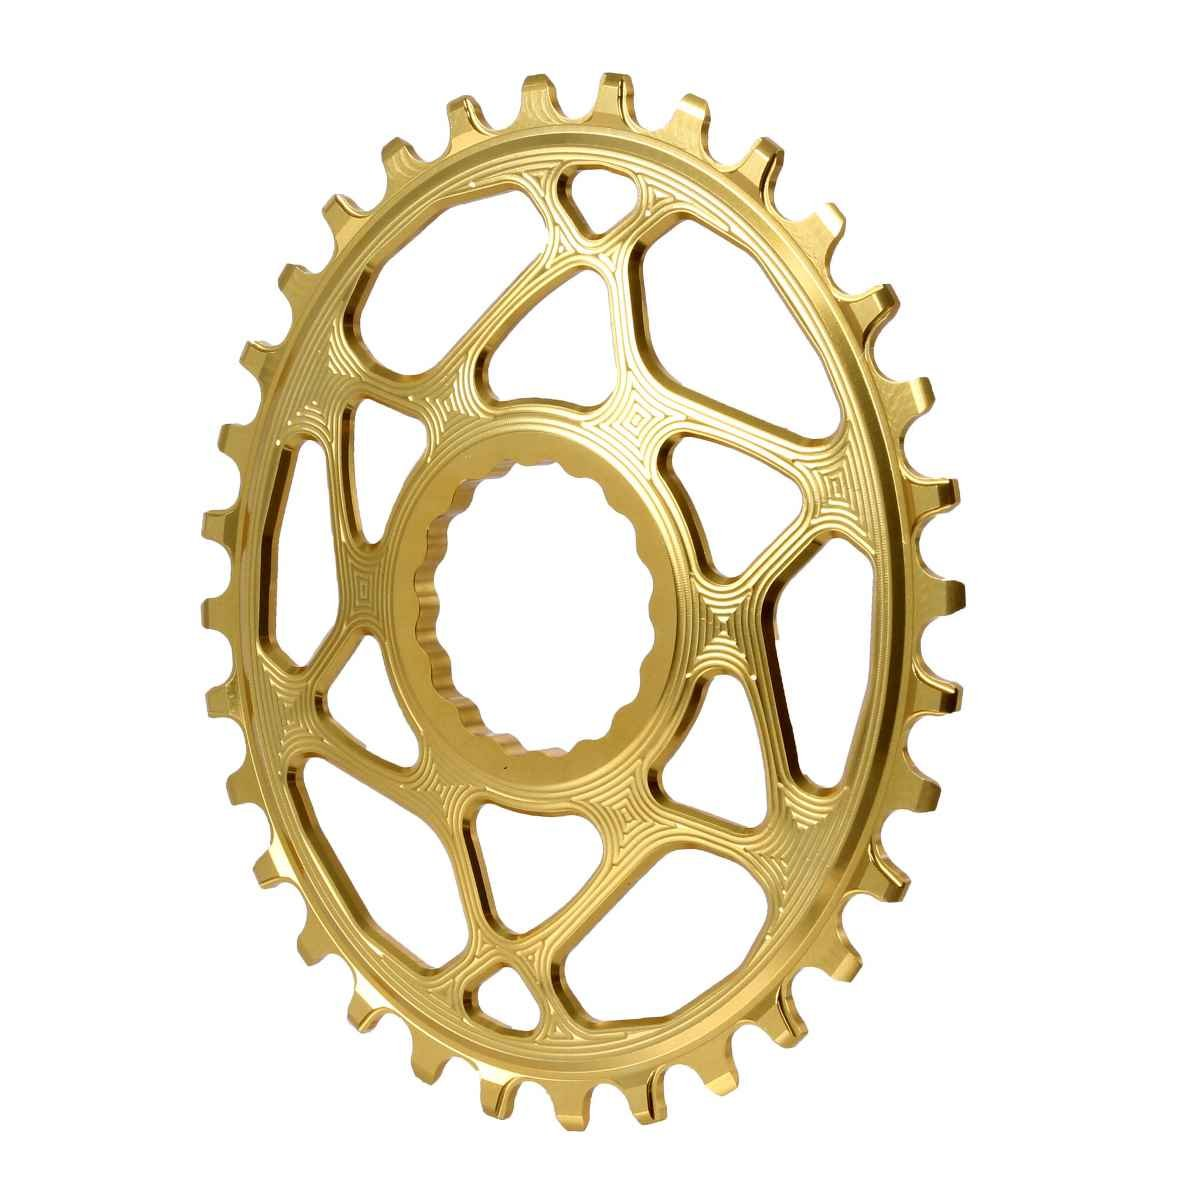 絶対ブラックSpiderless Cinch DM Oval Boost Chainring、32t – ゴールド – rfovboost32gl B07C7HTPD4